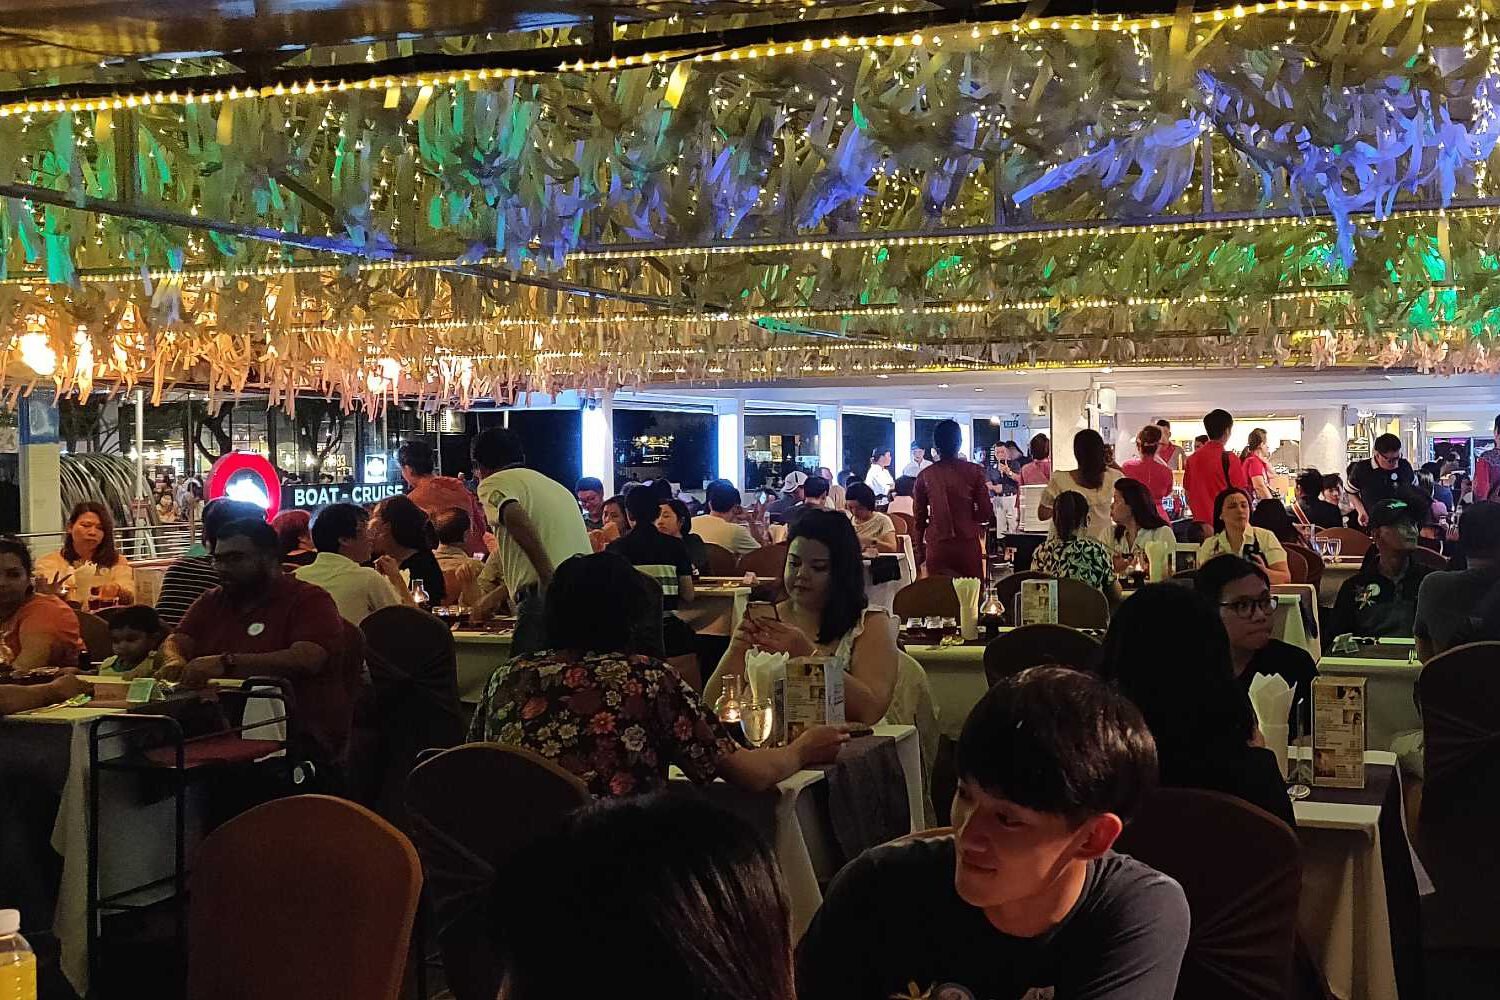 Tables with people eating on board the cruise